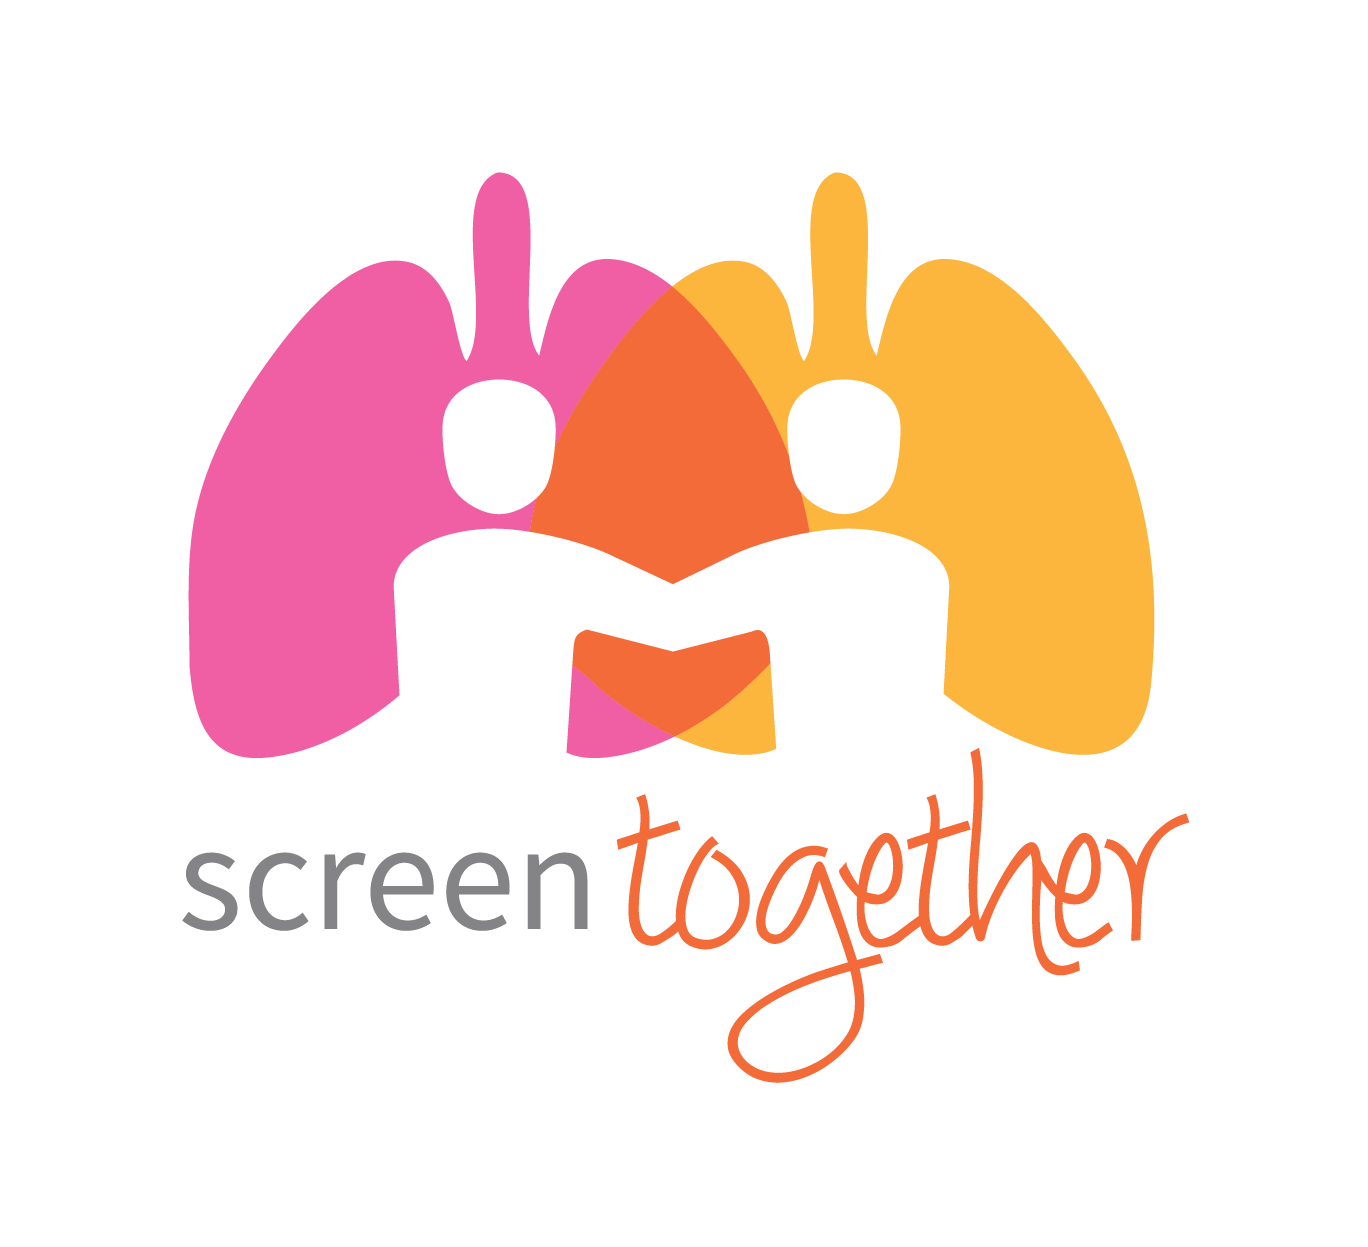 Awareness Campaign Takes Lung Cancer Risk Head-On, Asking North Carolinians to Screen Together